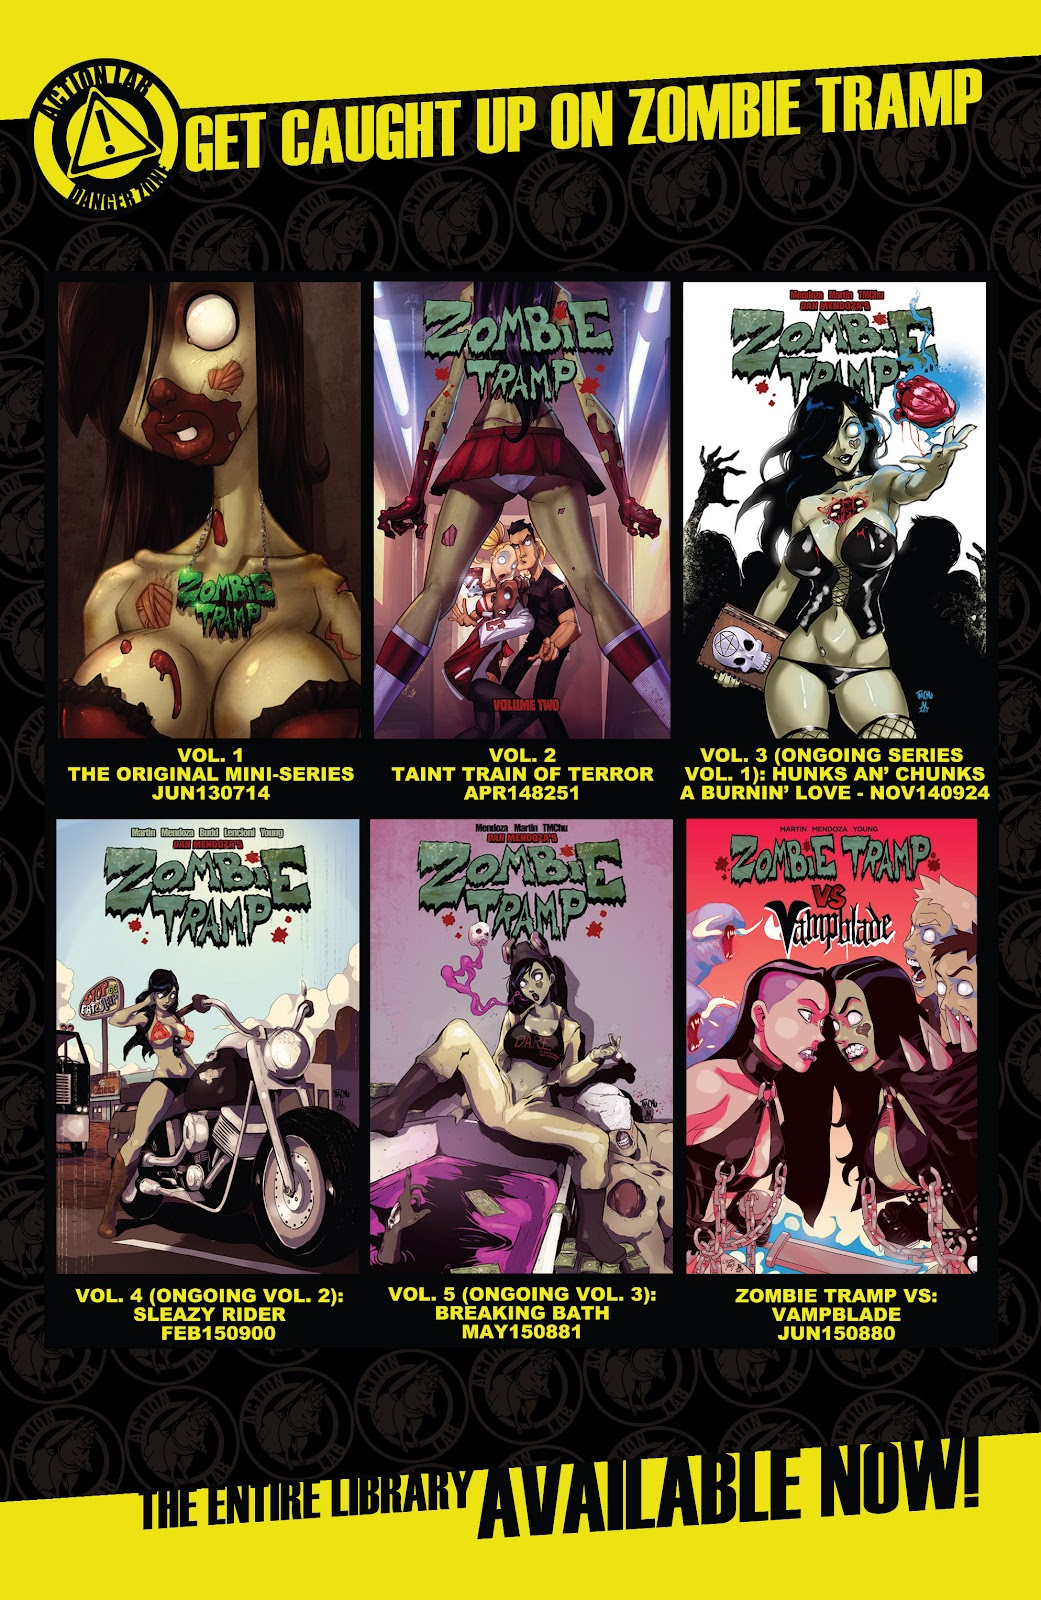 Zombie Tramp: VD Special Full Page 23